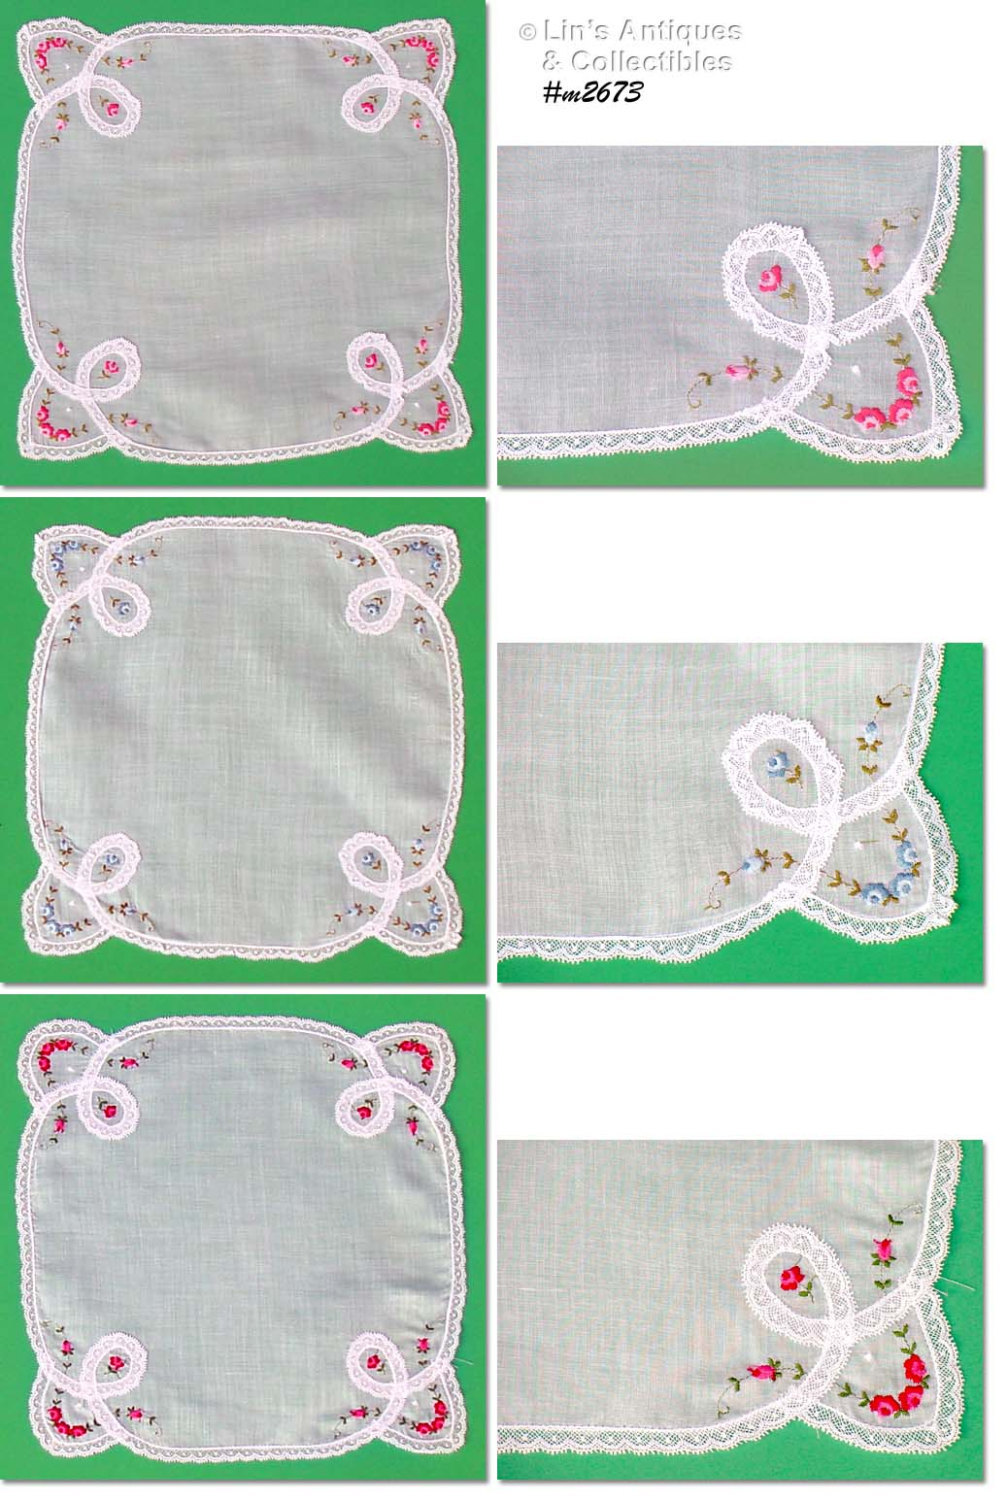 Lot of Three Vintage Handkerchiefs With Lace and Embroidered Roses (Inv. #M2673) - $38.00